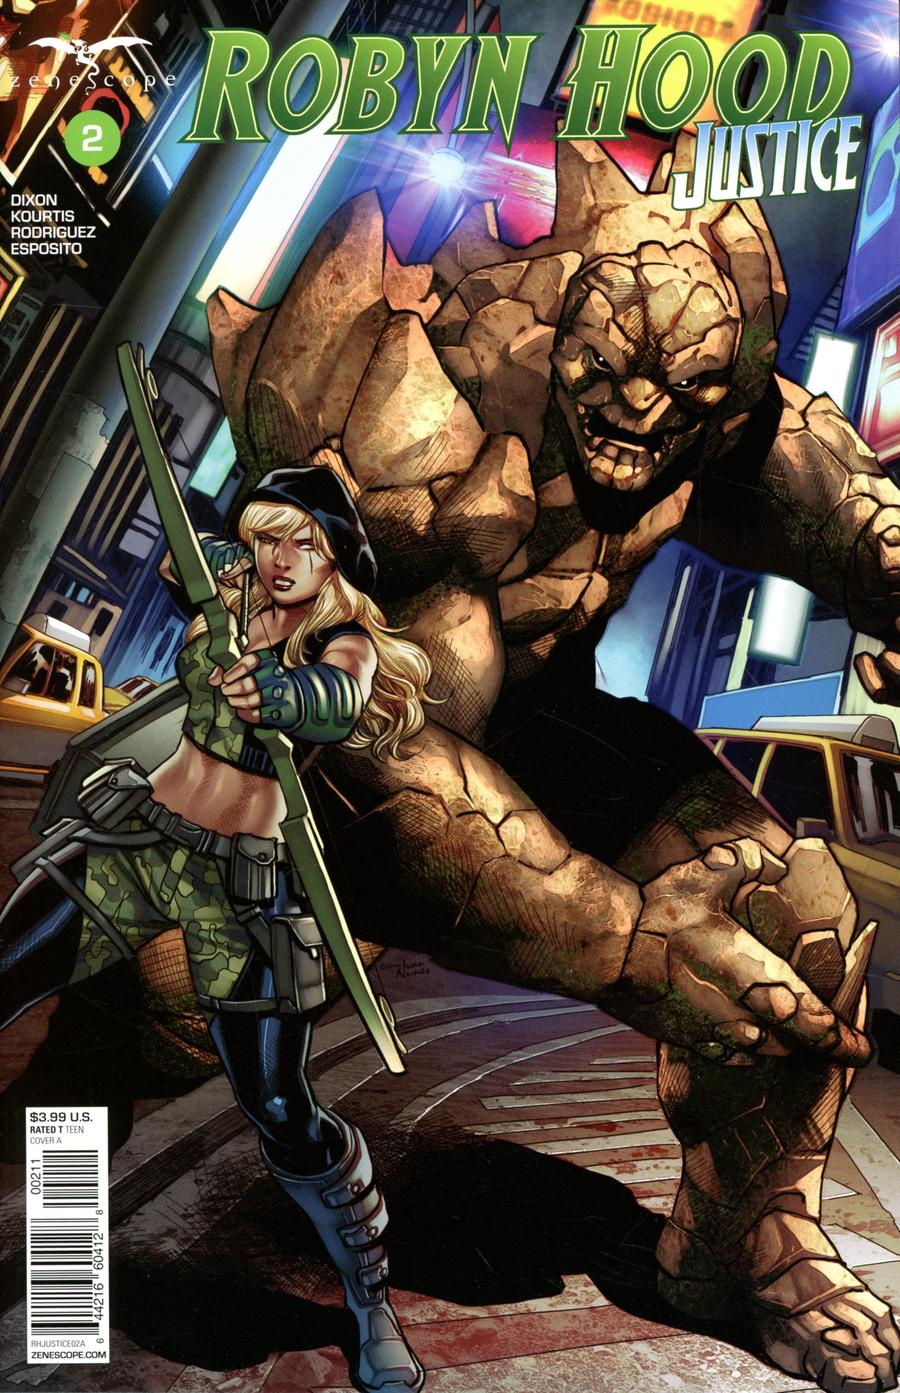 Grimm Fairy Tales Presents Robyn Hood Justice #2 Cover A Martin Coccolo